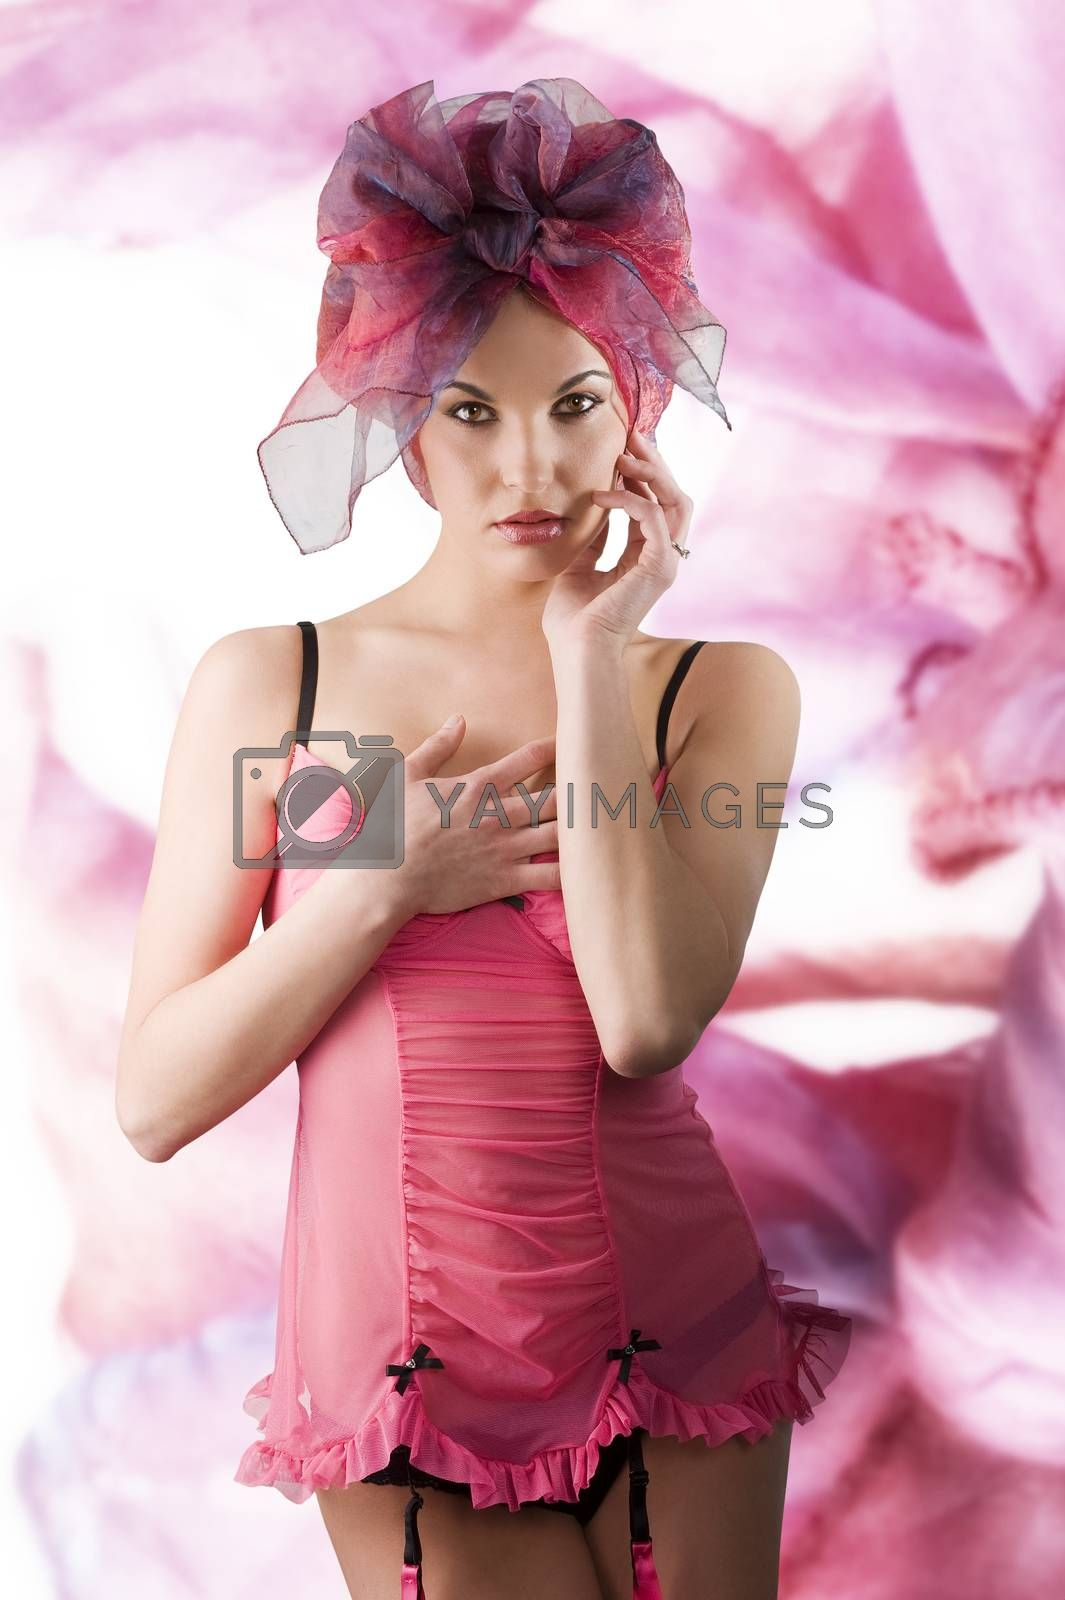 pink girl with headscarf by fotoCD